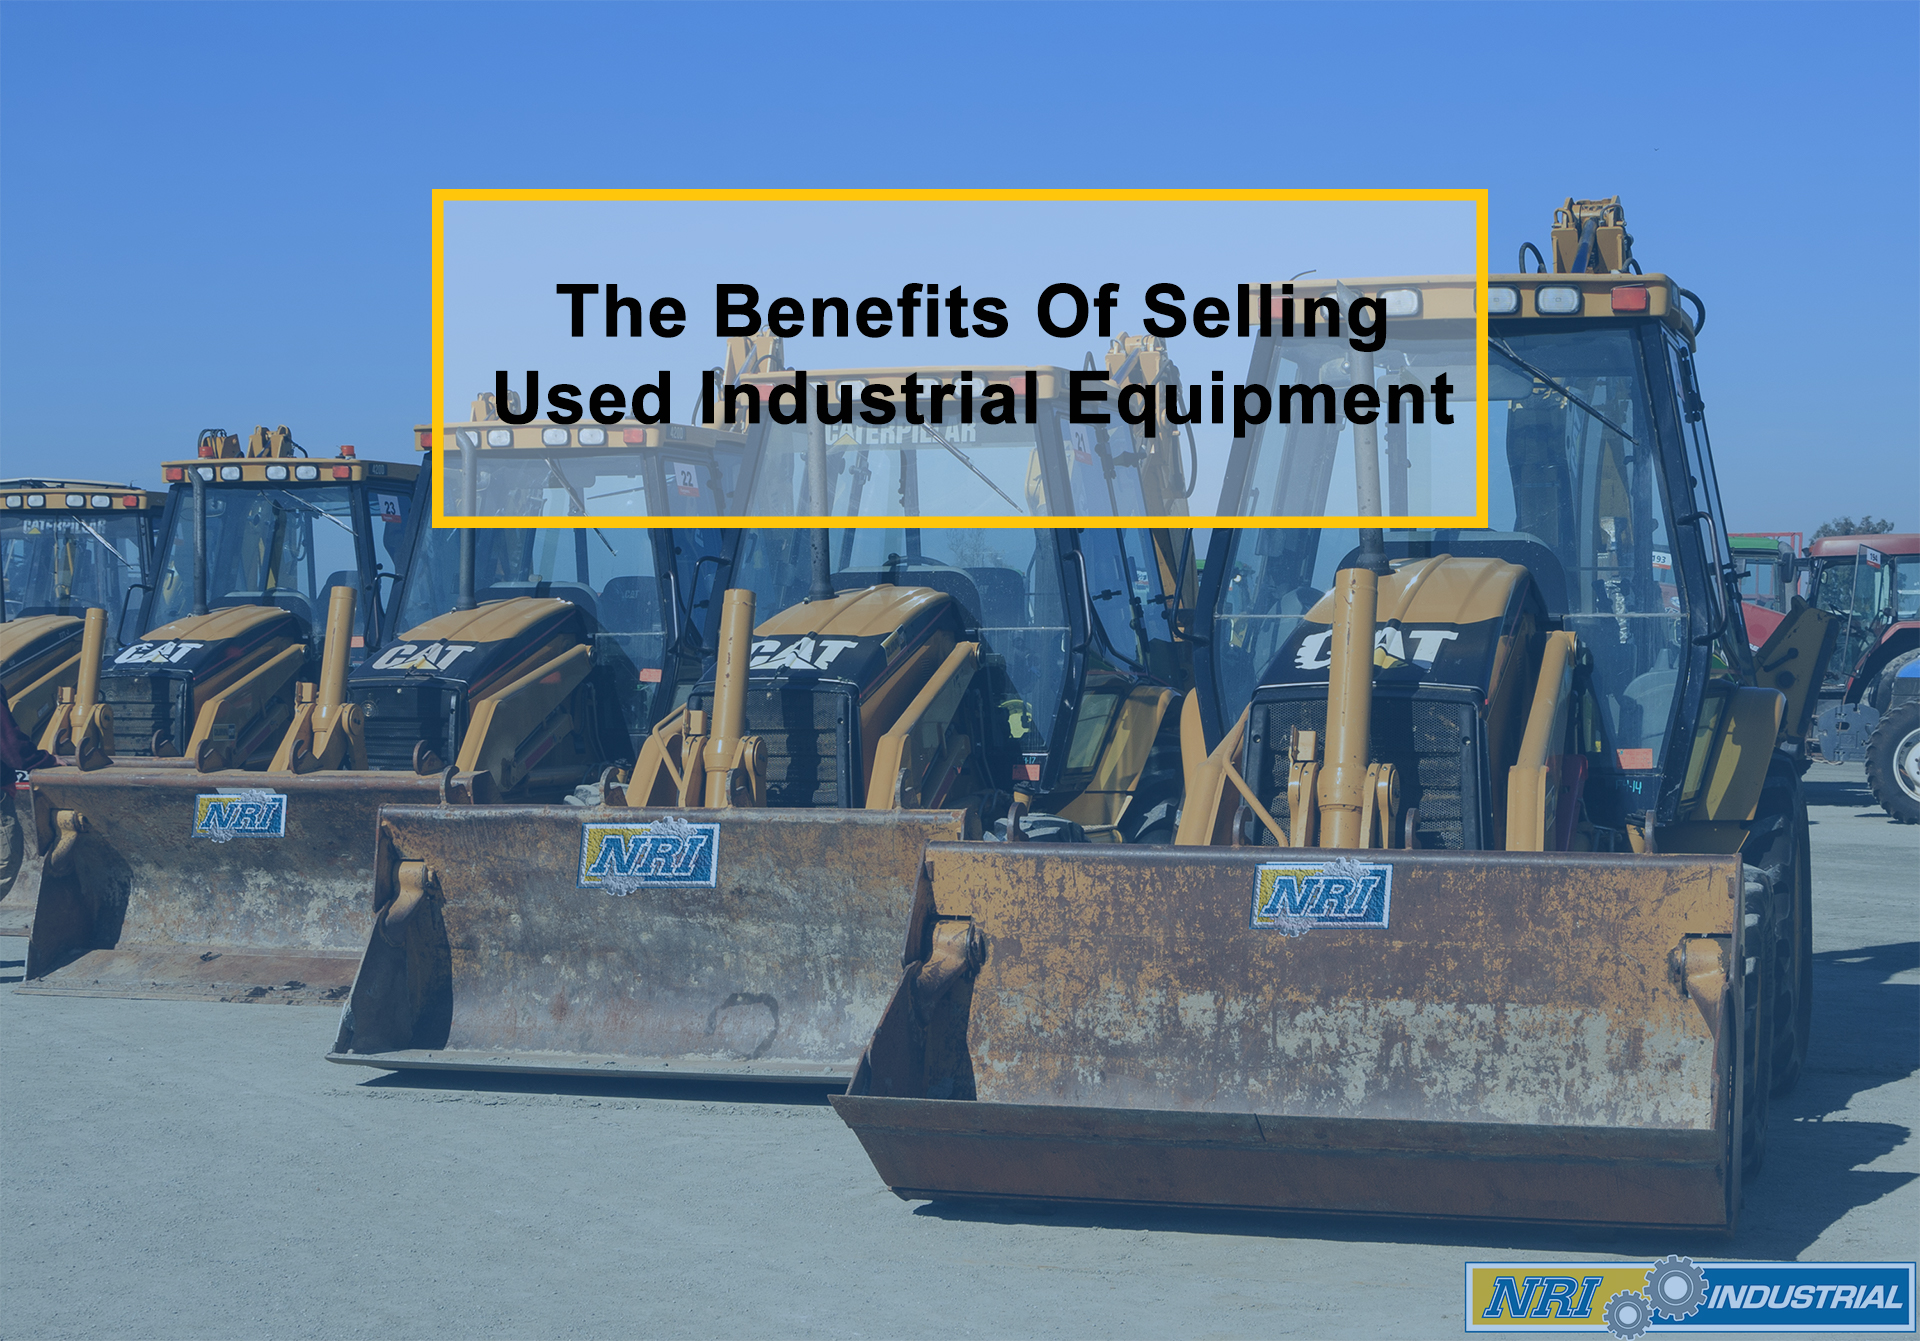 The Benefits Of Selling Used Industrial Equipment